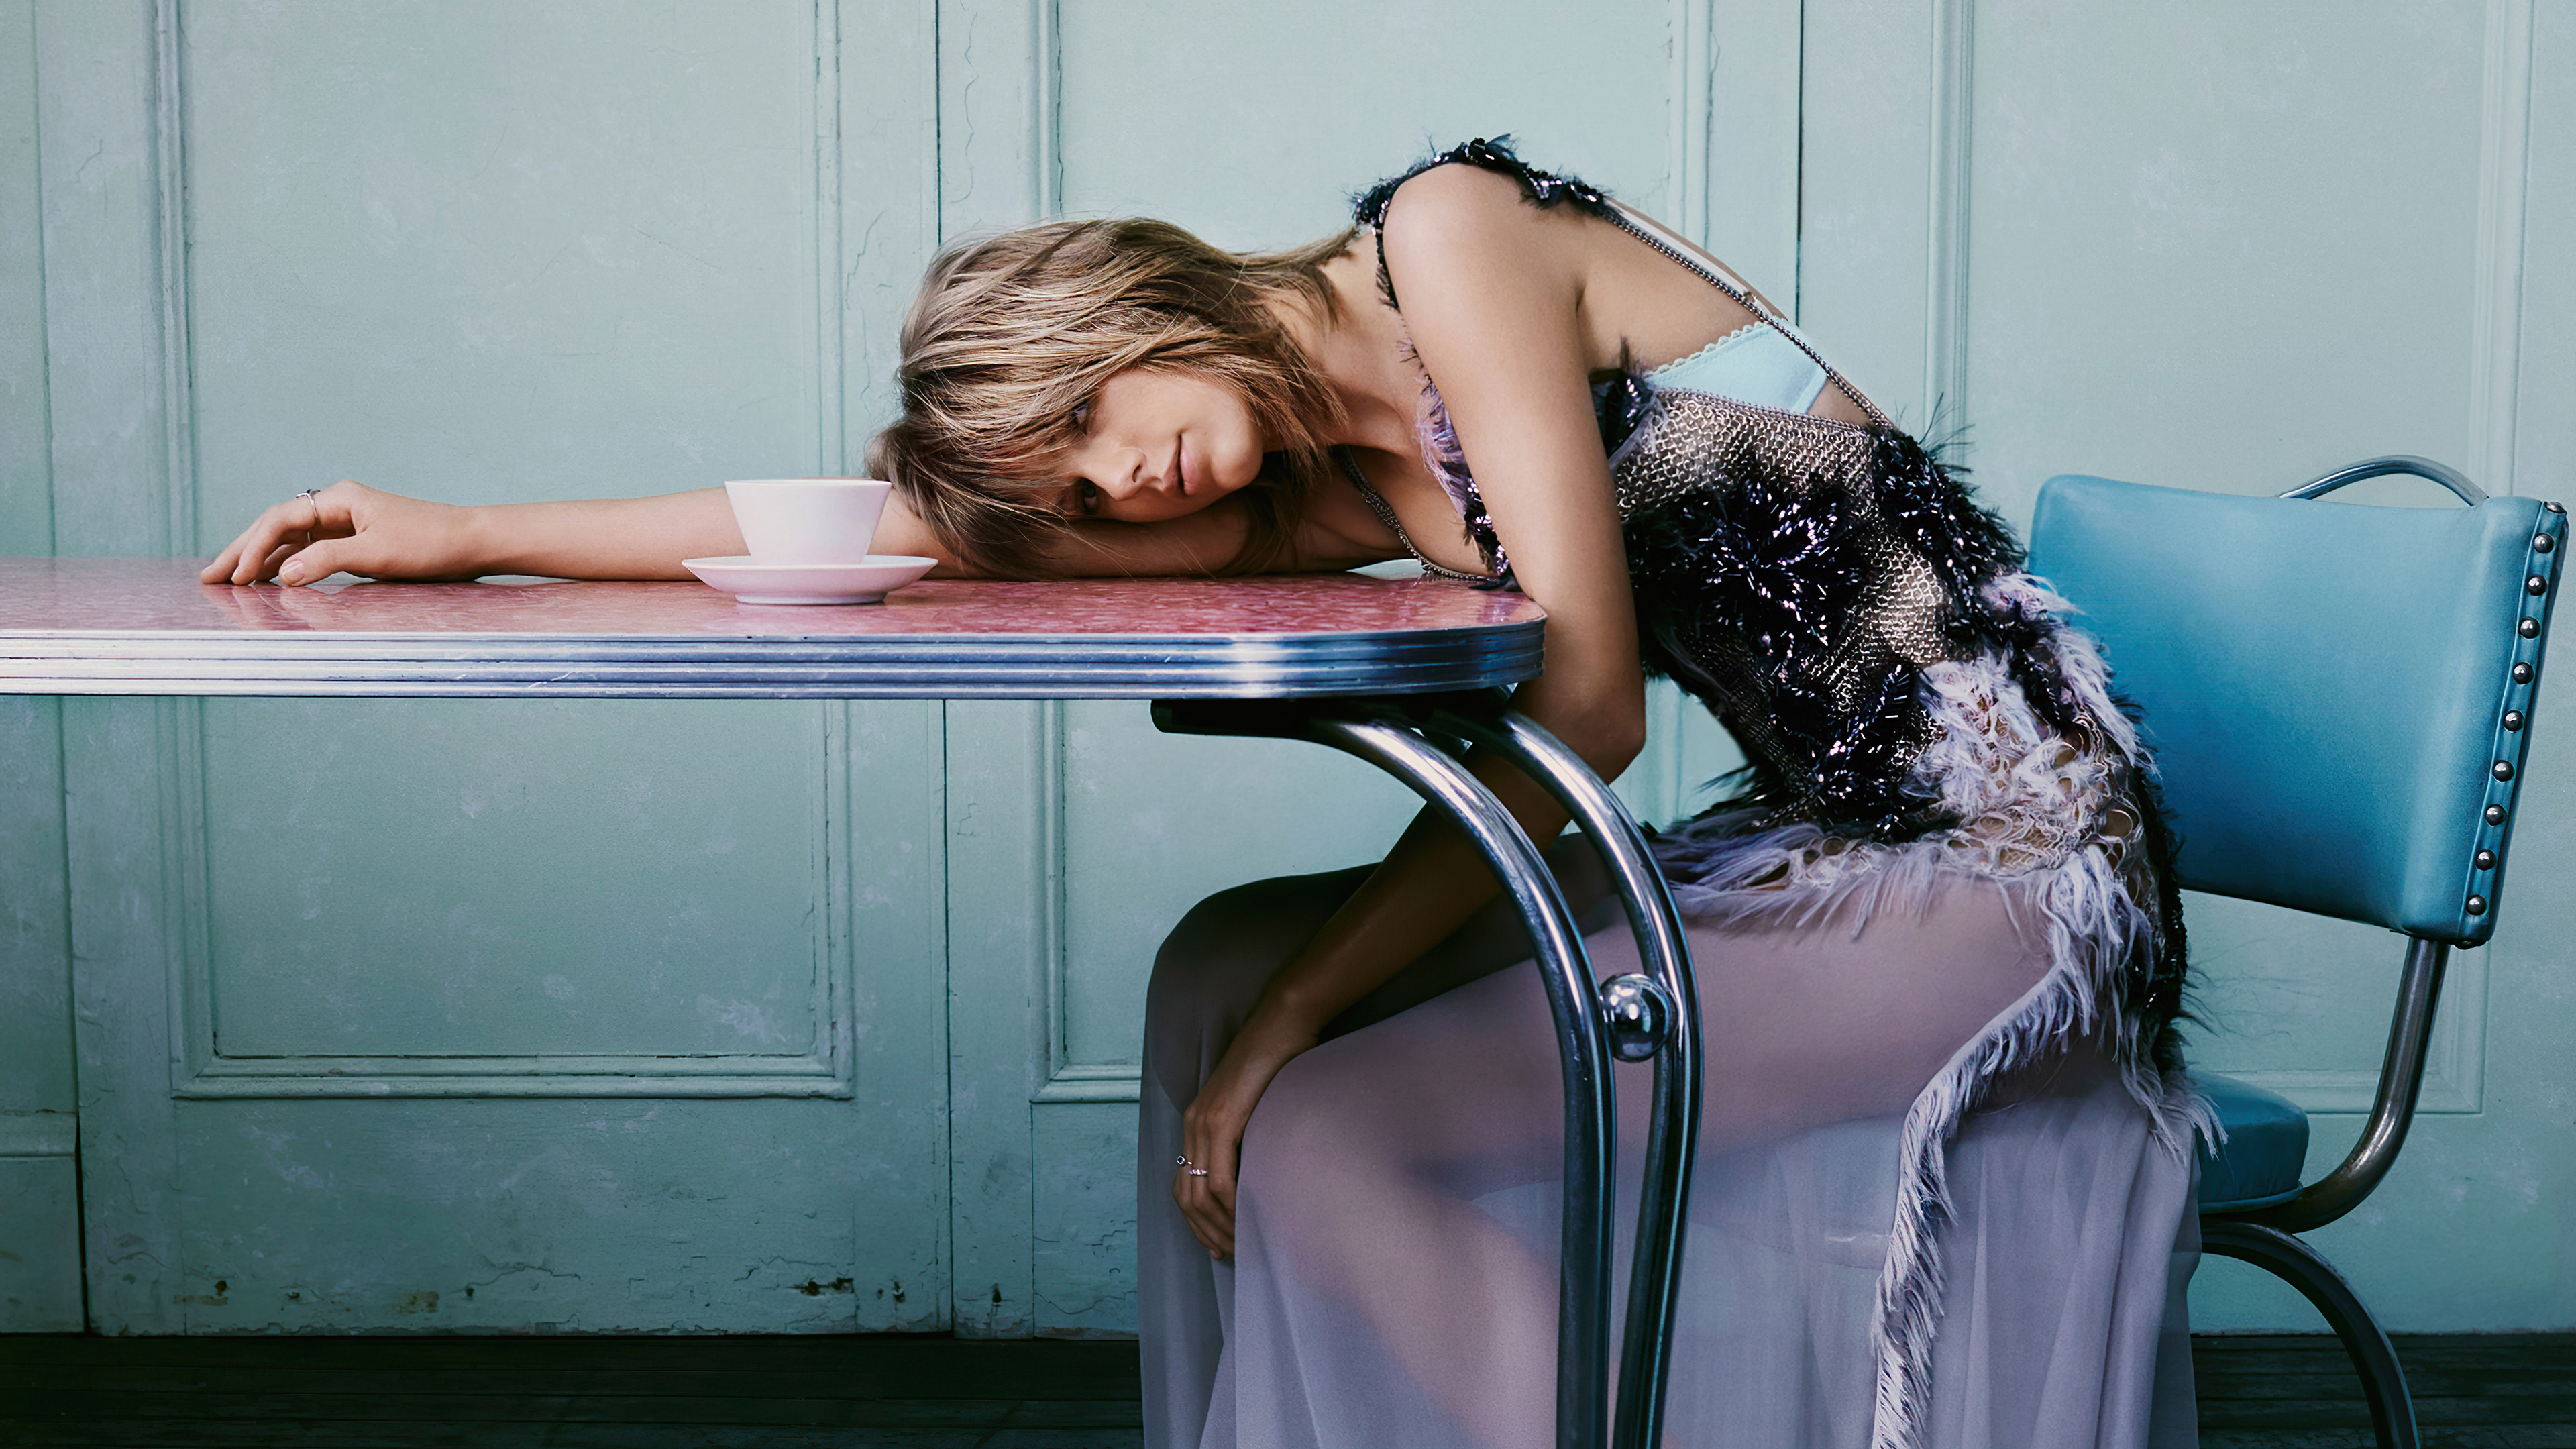 Wallpaper Taylor Swift laying on table